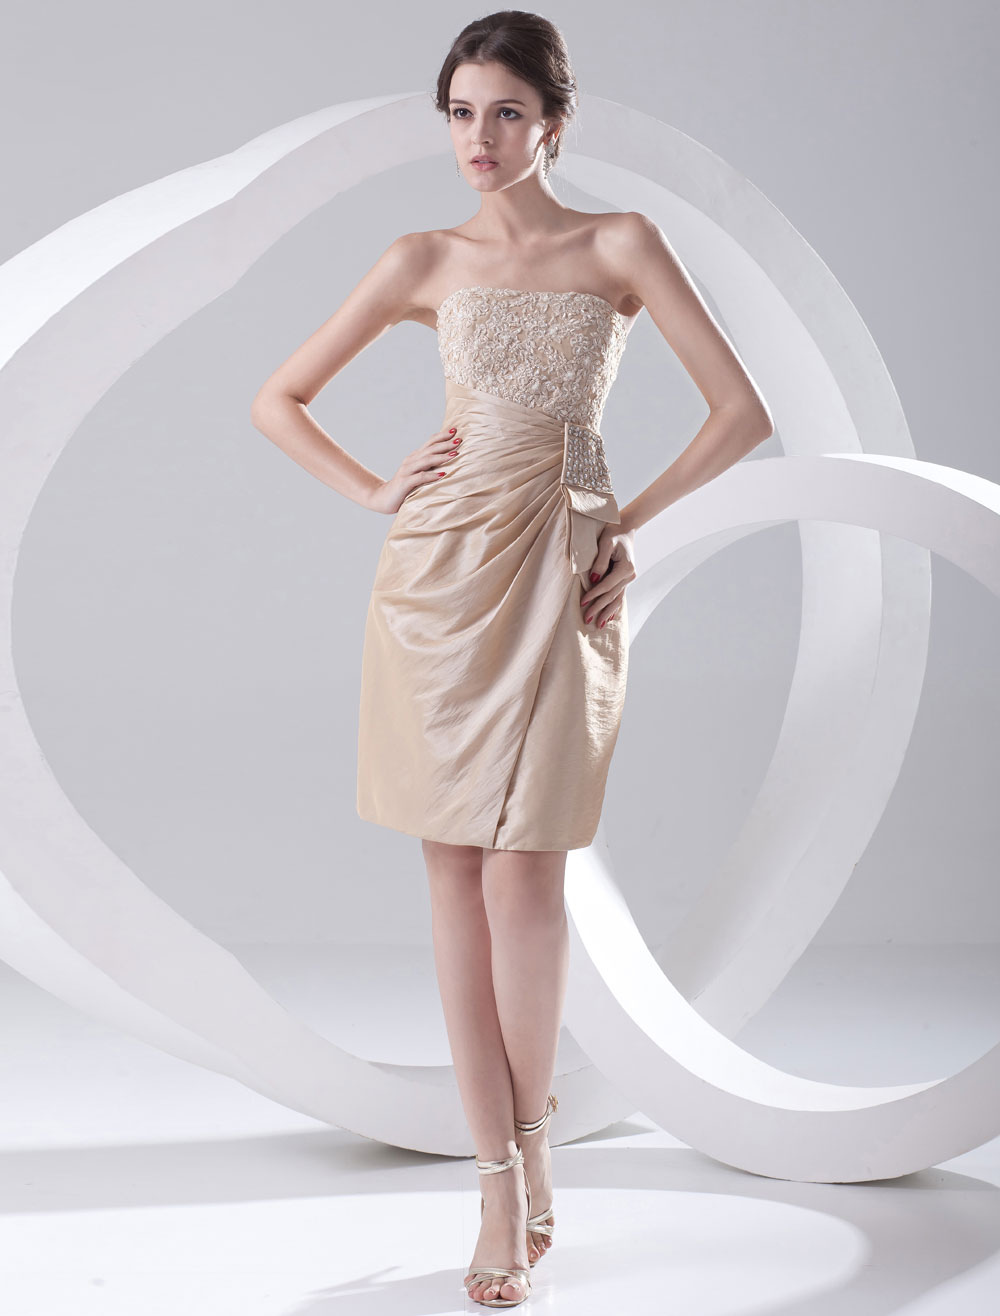 Buy Champagne Cocktail Dress Knee-Length Strapless Sheath Rhinestone Ruched Taffeta Dress for $108.89 in Milanoo store